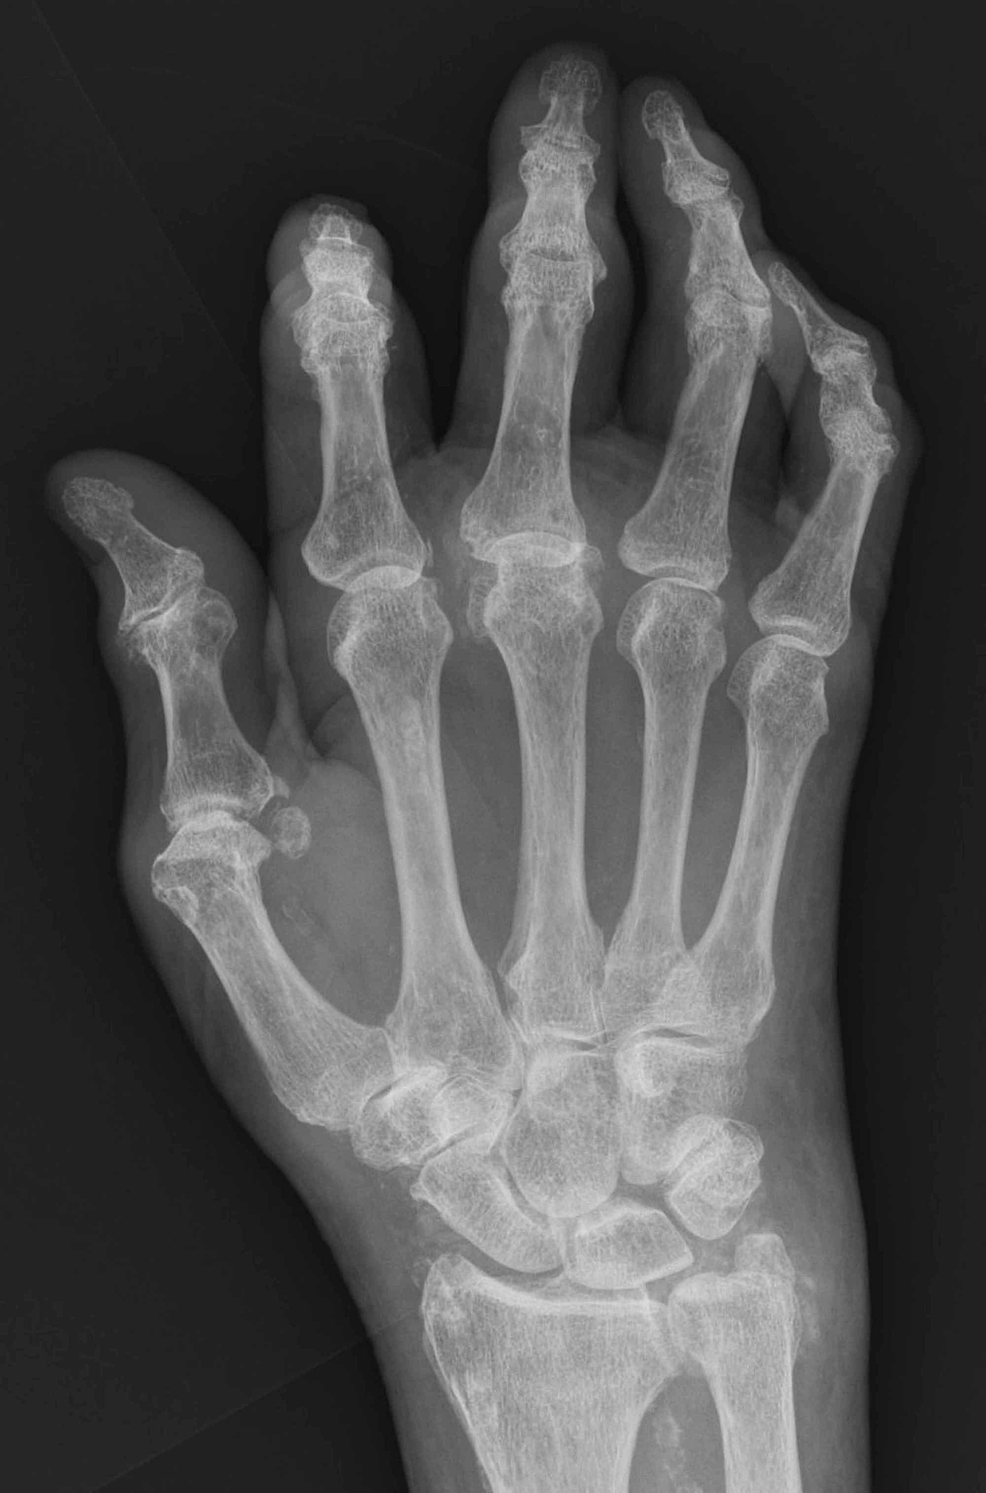 Radiography-of-the-right-hand.-No-bone-involvement-is-observed.